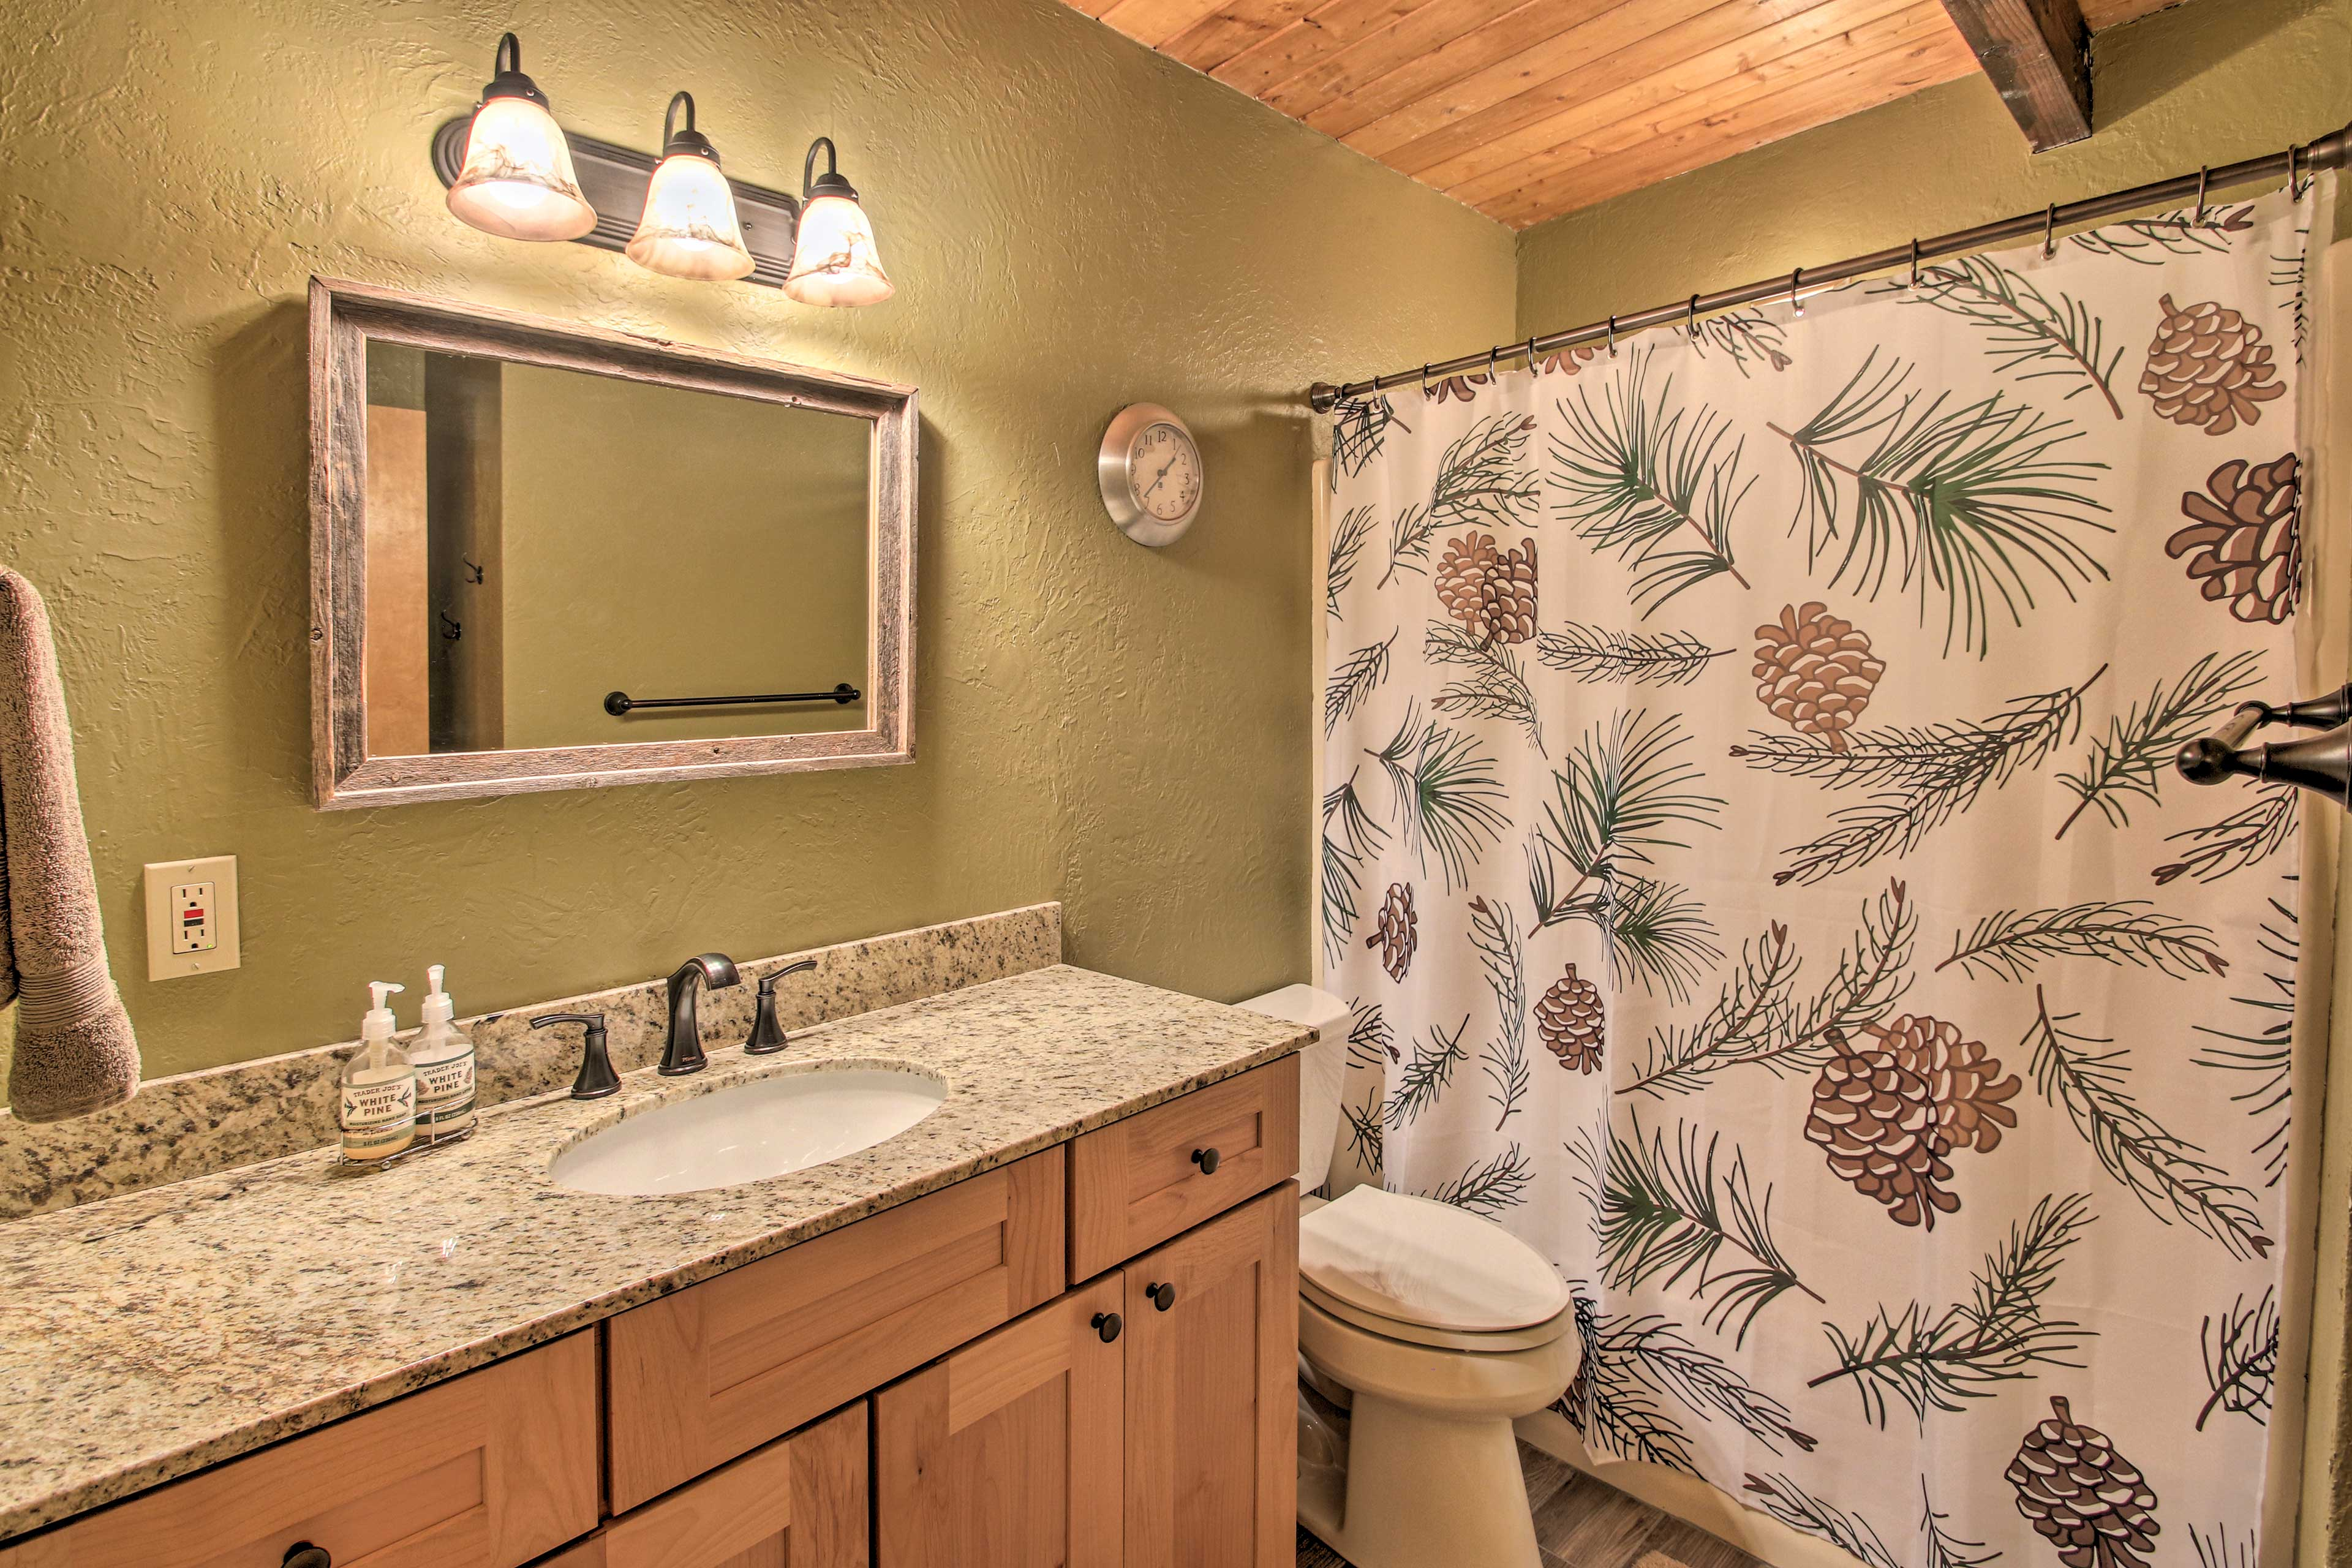 Both of the bathrooms were recently updated!